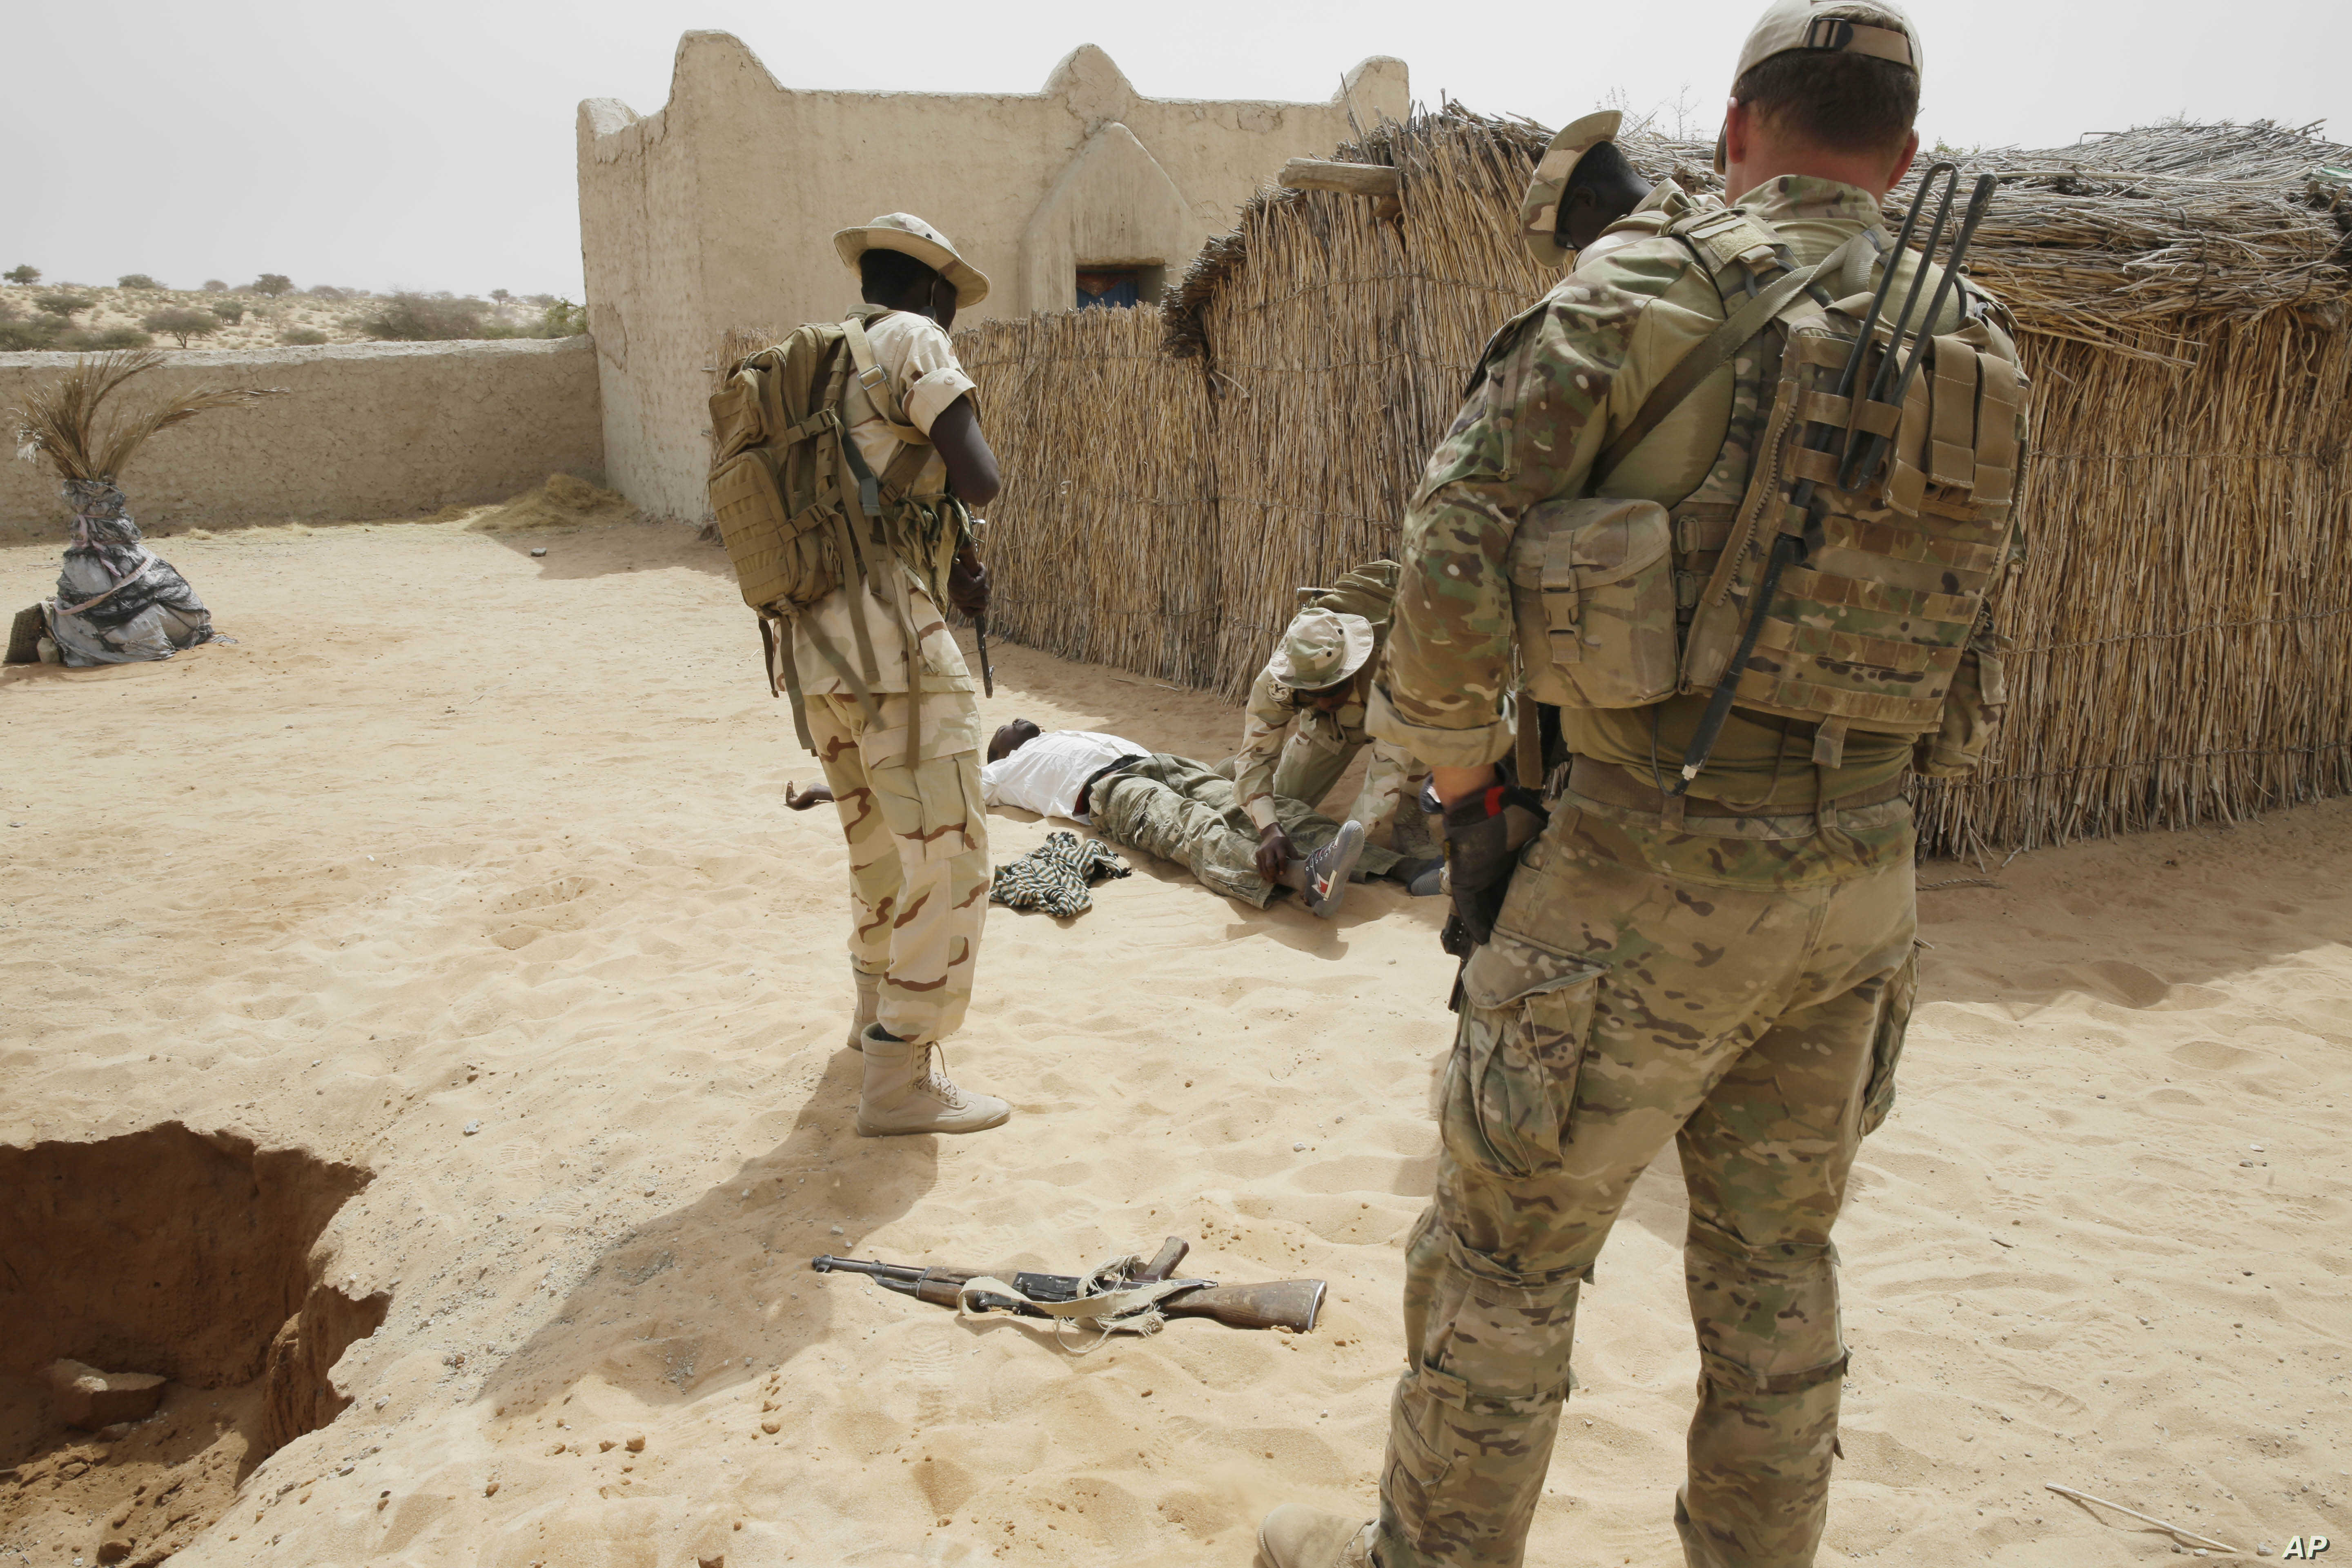 FILE - Chadian troops participate along with Nigerian special forces watched by a U.S. special forces soldier, at right, in a hostage rescue exercise in Mao, Chad, March 7, 2015.